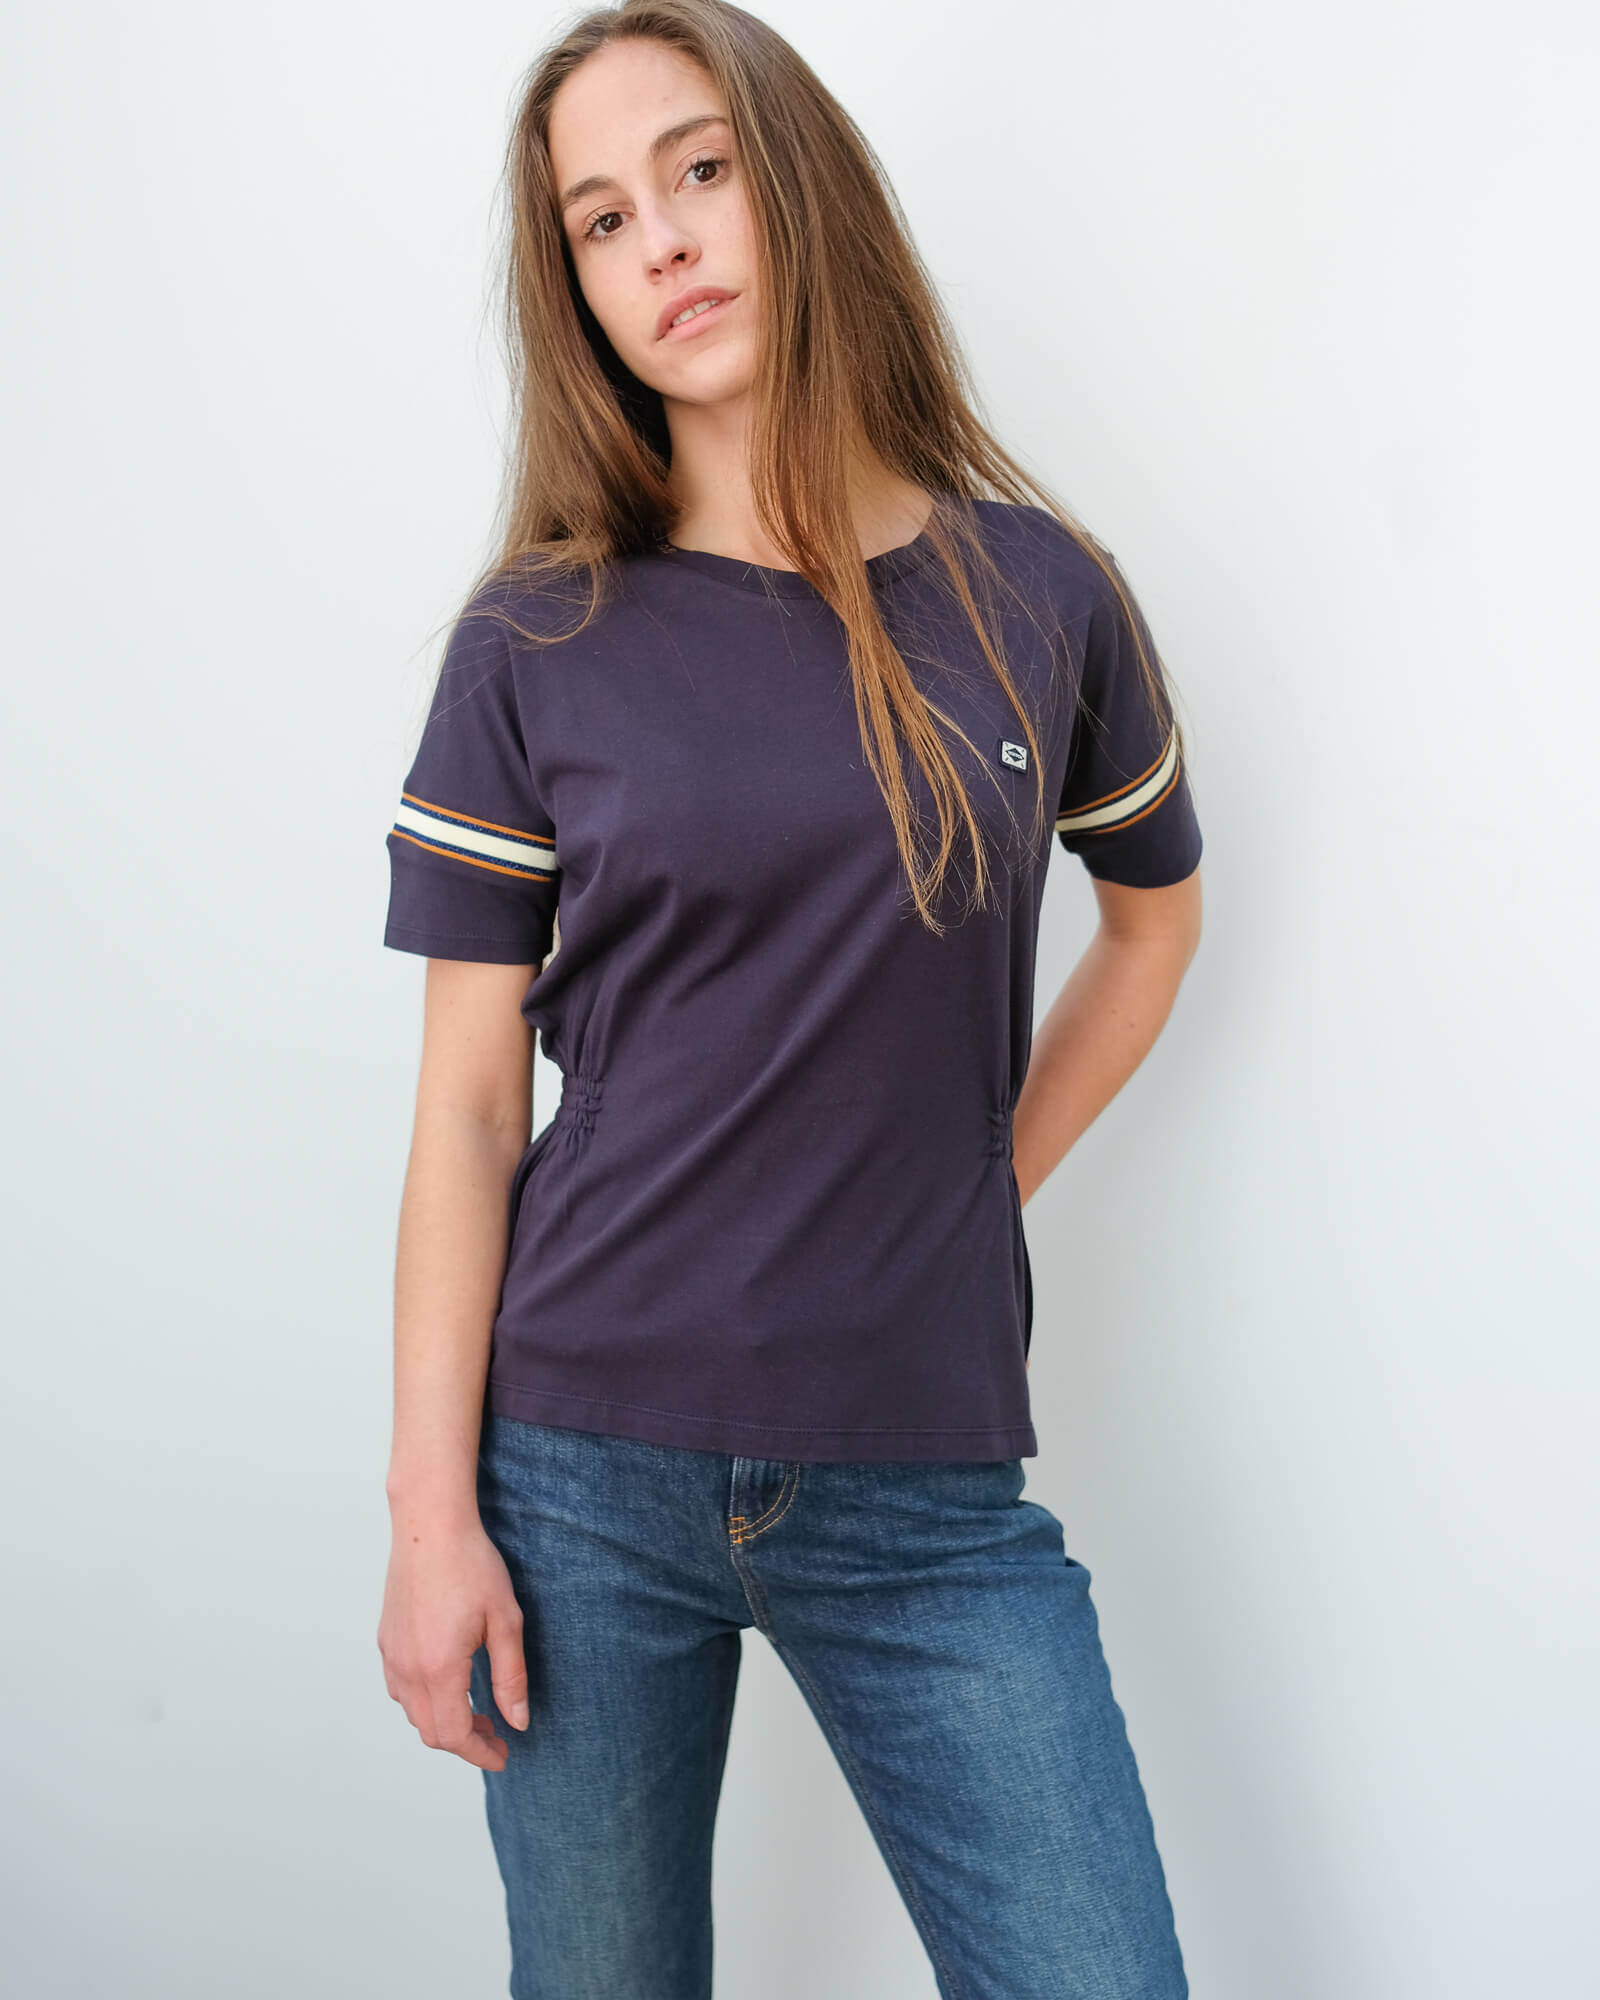 AB 151253 Soft tee with sporty rib detail in navy